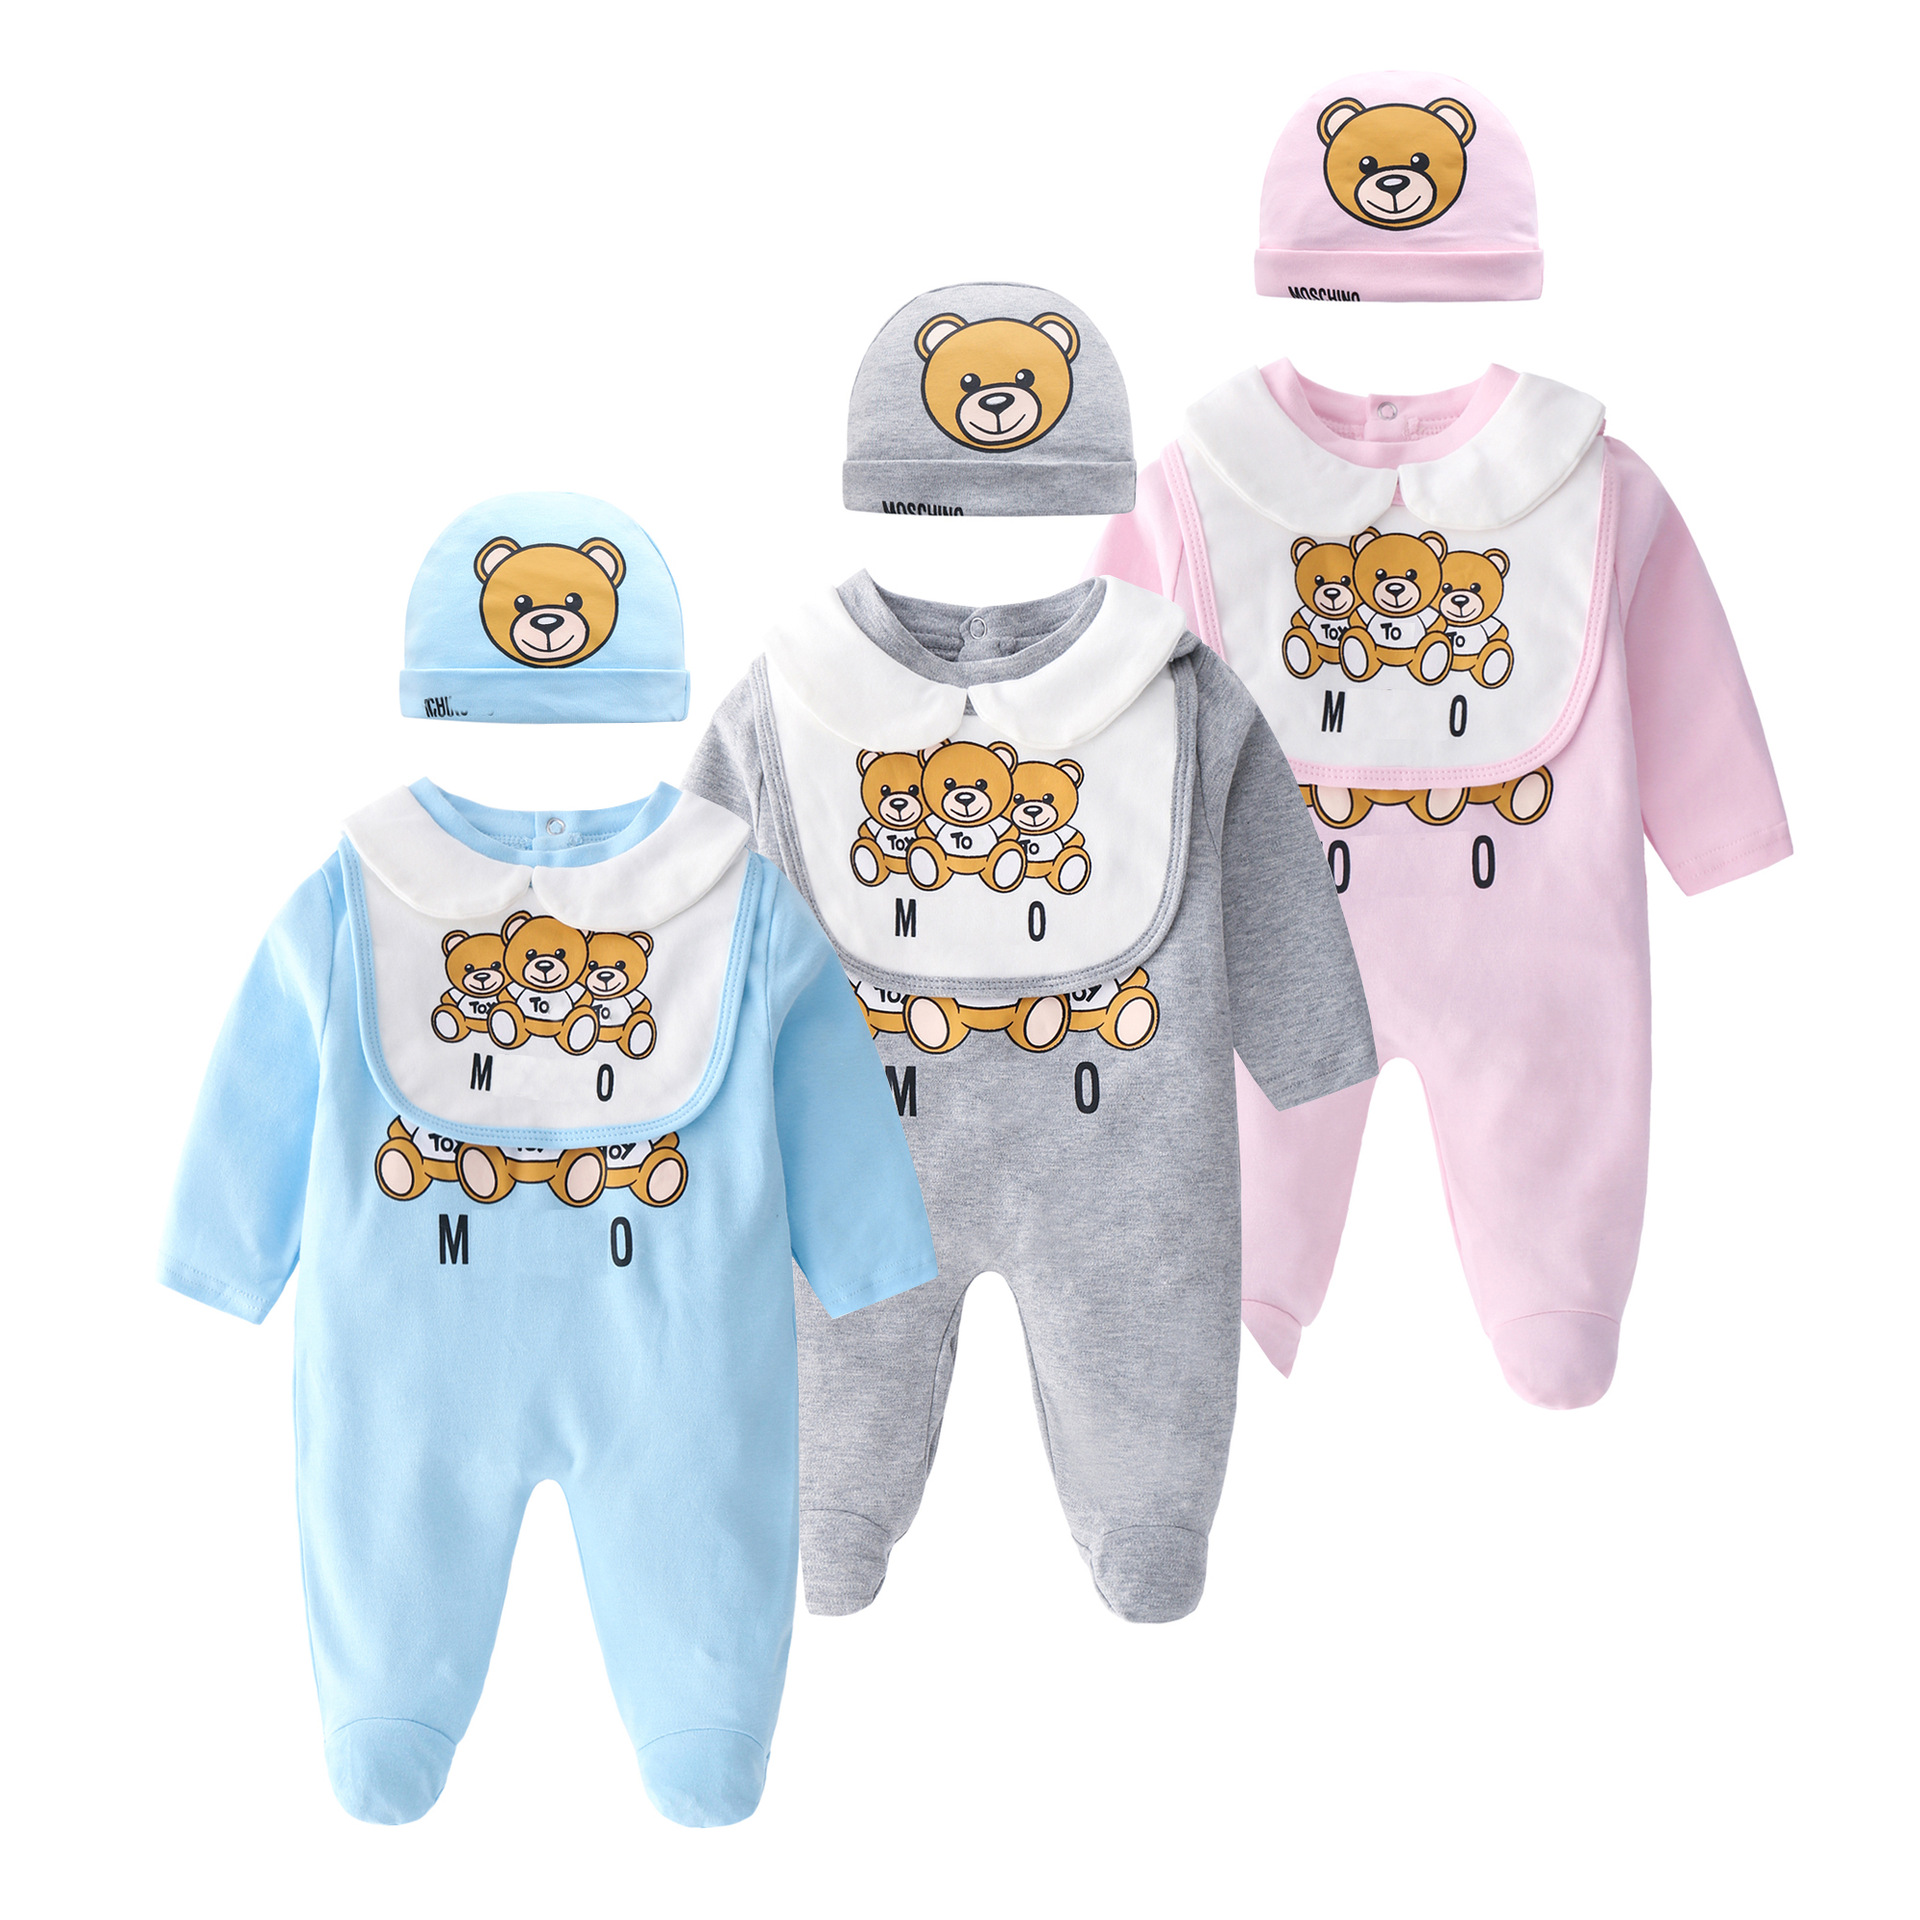 Newborn Baby Onesie 3 Pieces Online Celebrity Clothes for Babies Autumn Clothing Pure Cotton Spring And Autumn Long-sleeve Jumps